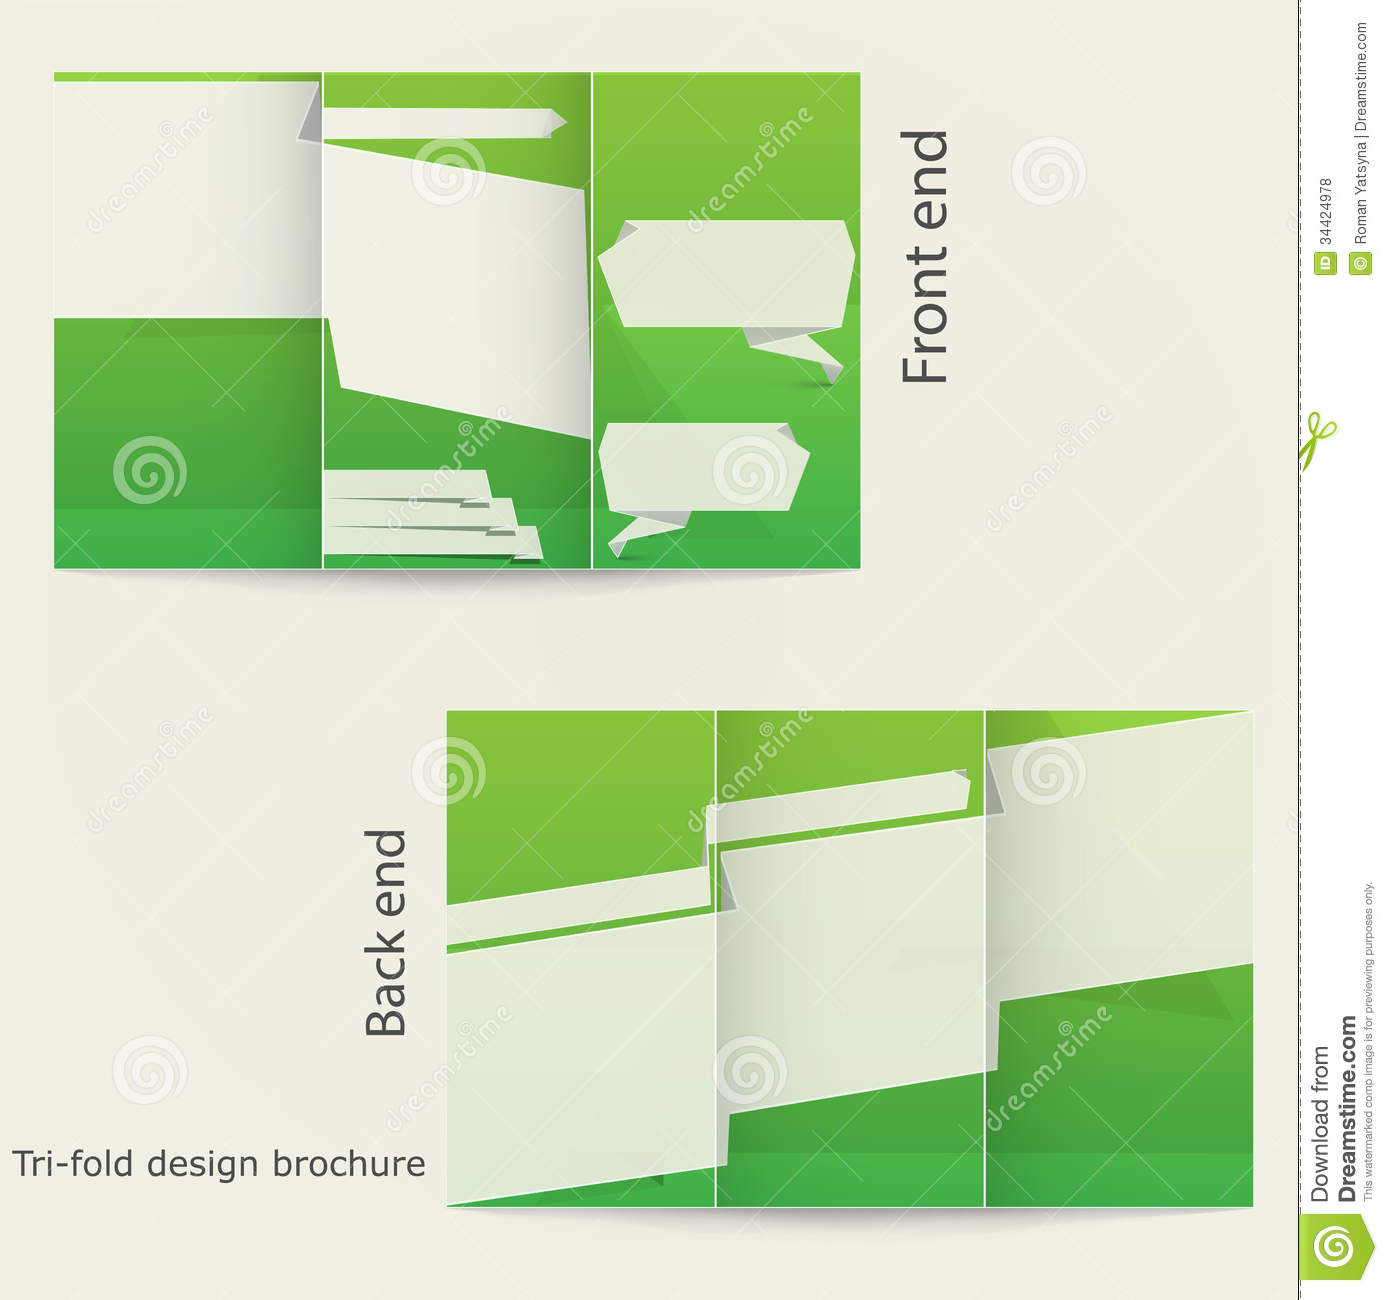 12 tri fold brochure template design images tri fold for Tri brochure template